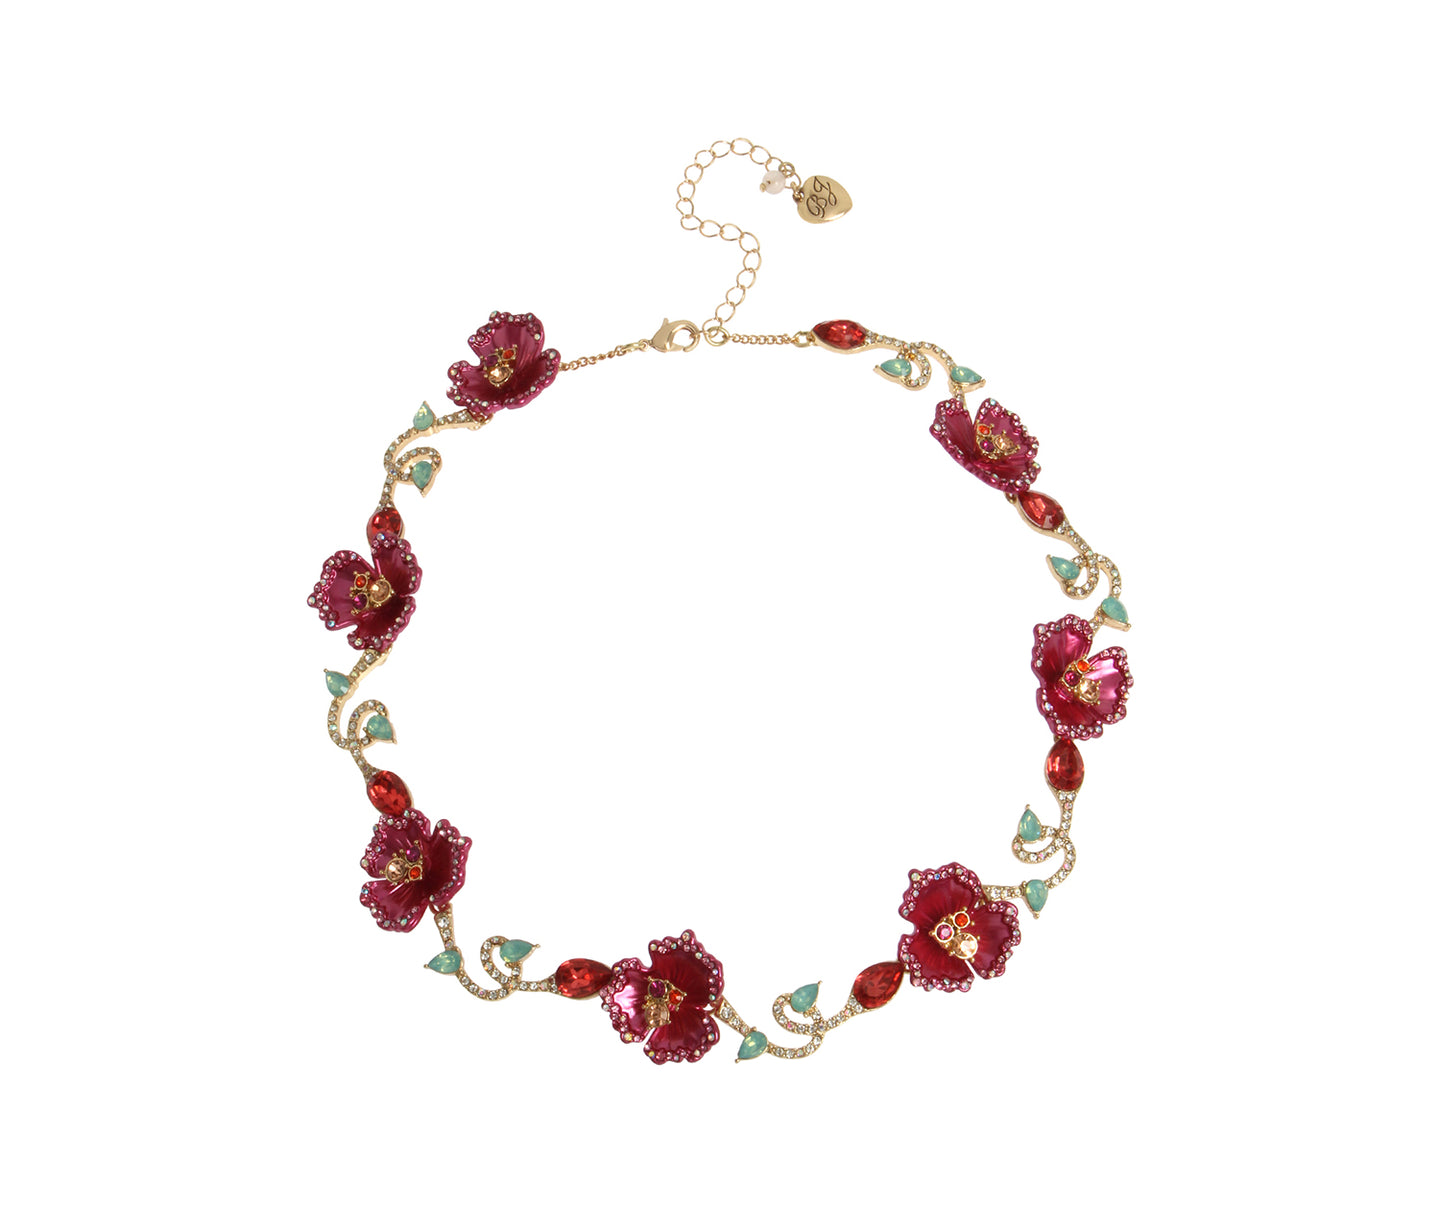 OPULENT FLORAL FLOWER COLLAR FUCHSIA - JEWELRY - Betsey Johnson